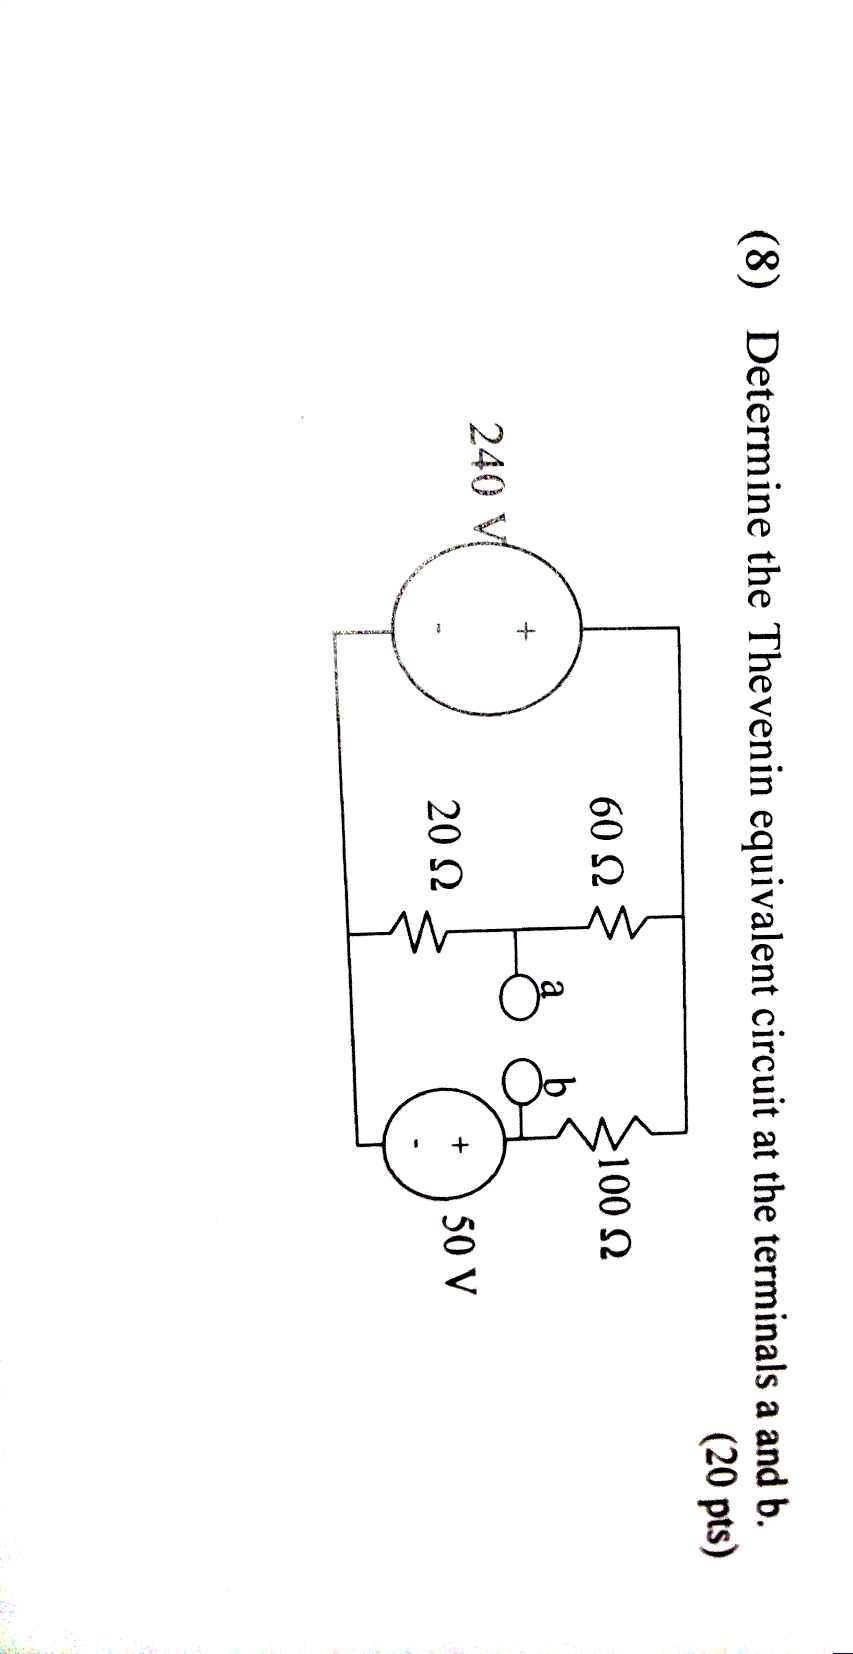 Determine the Thevenin equivalent circuit at the t